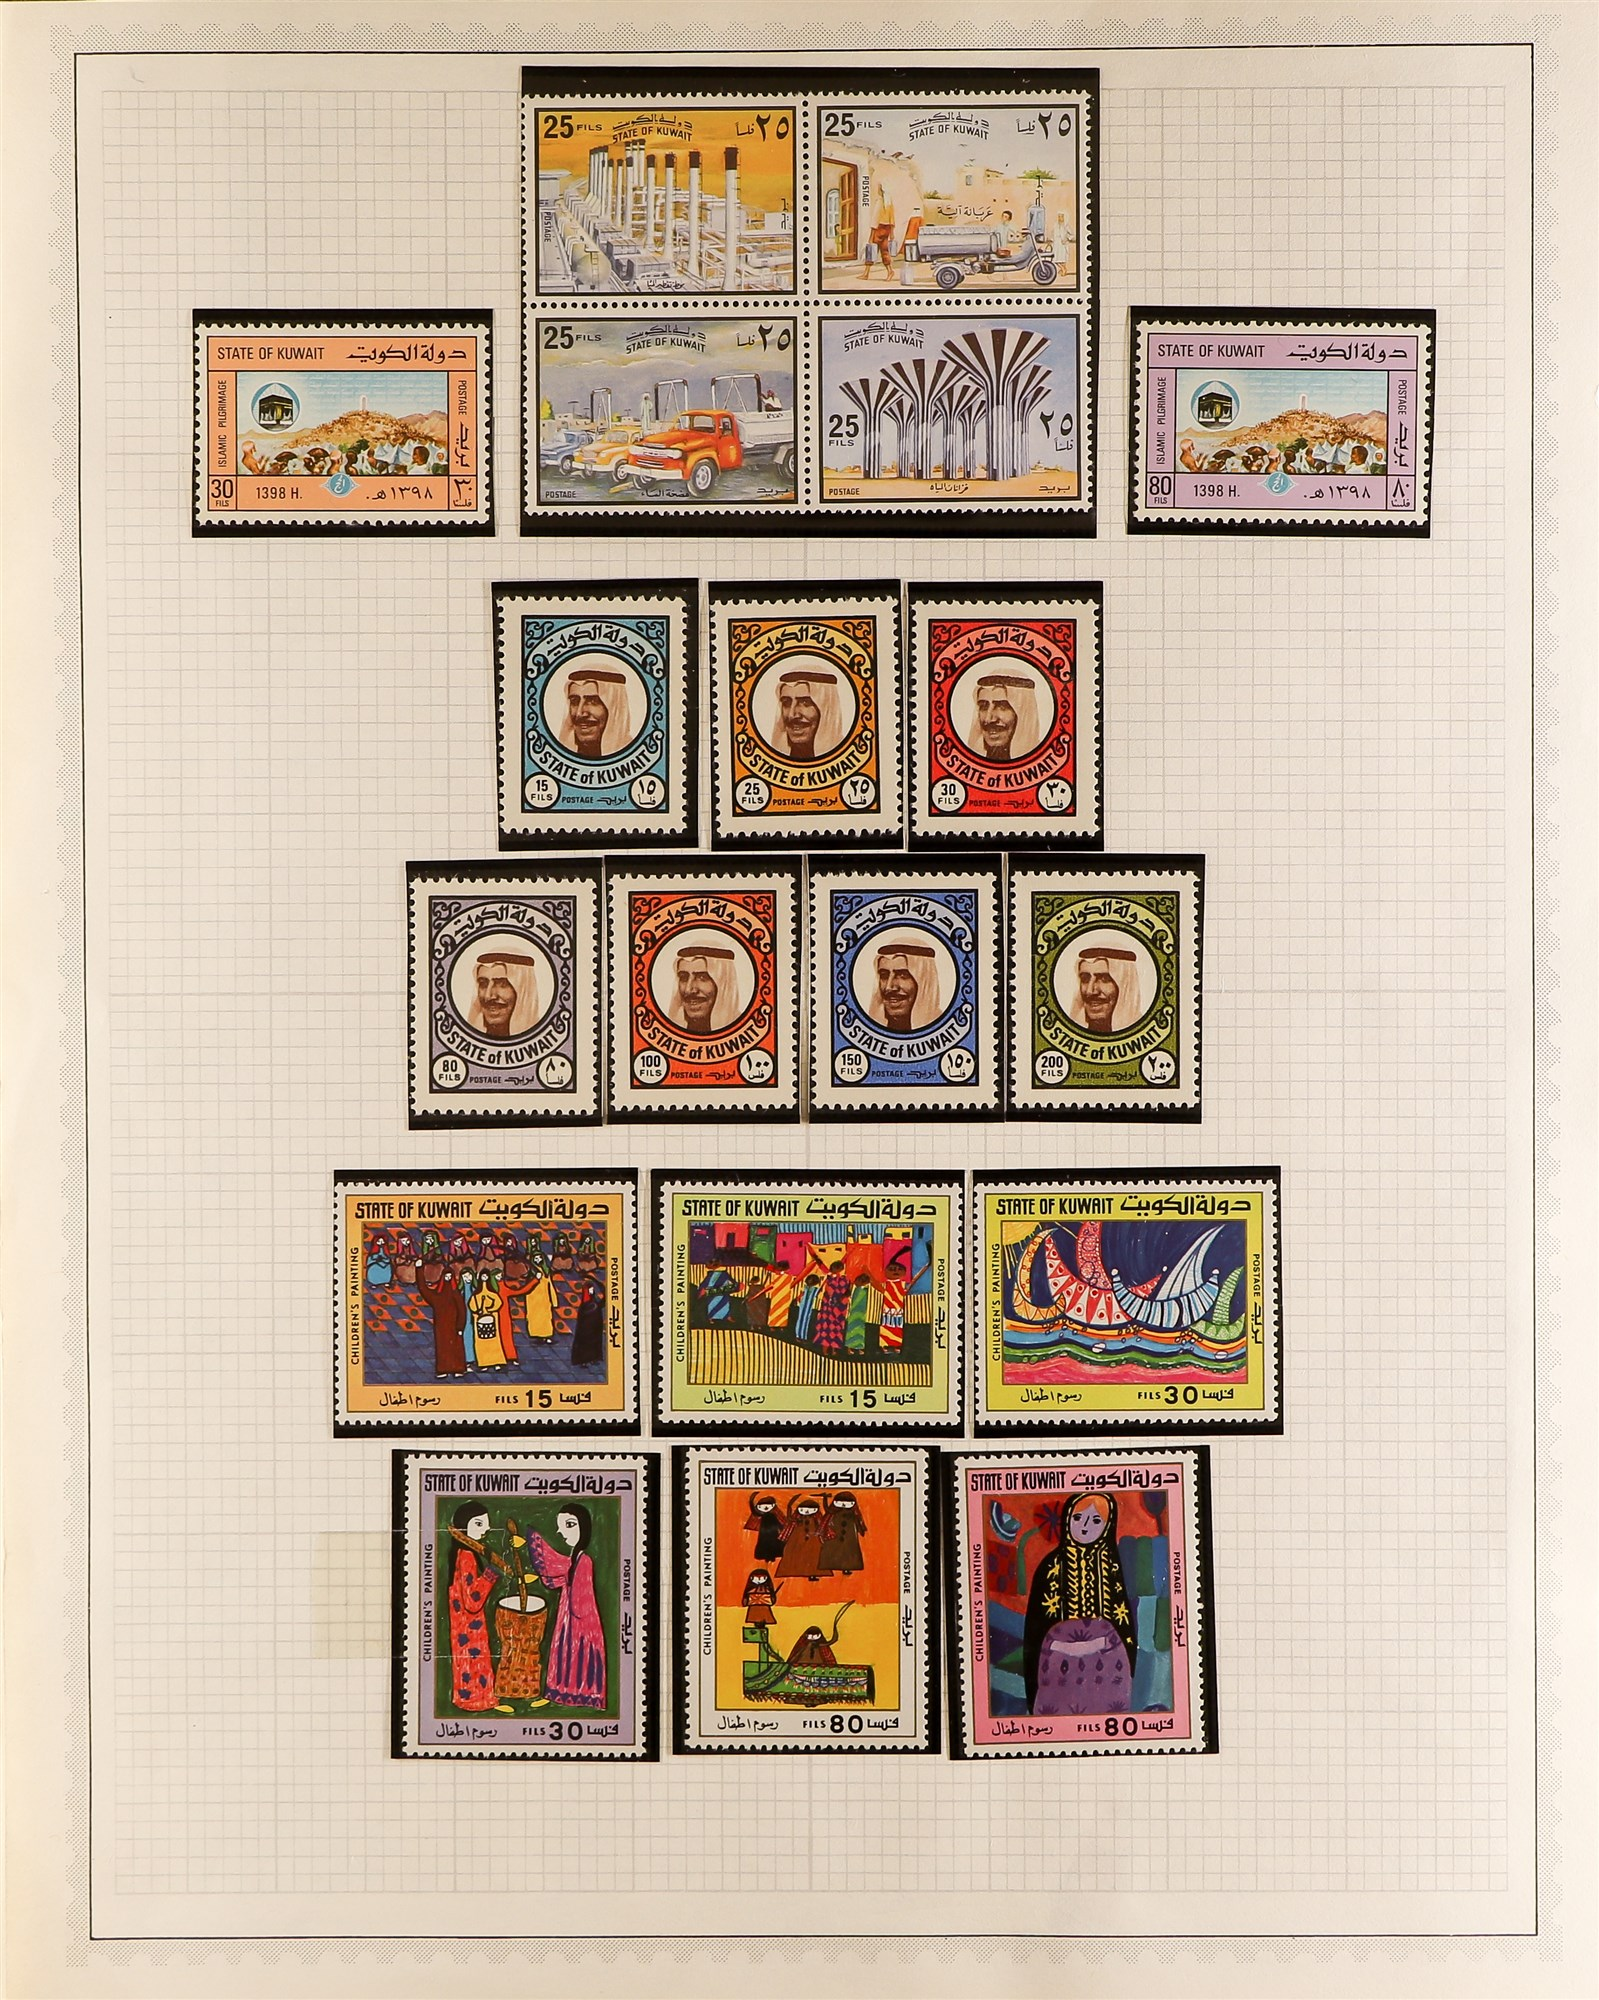 KUWAIT 1977-1983 NEVER HINGED MINT COLLECTION incl. 1977 Sheikh set, 1977 Games se-tenant blocks - Image 2 of 8